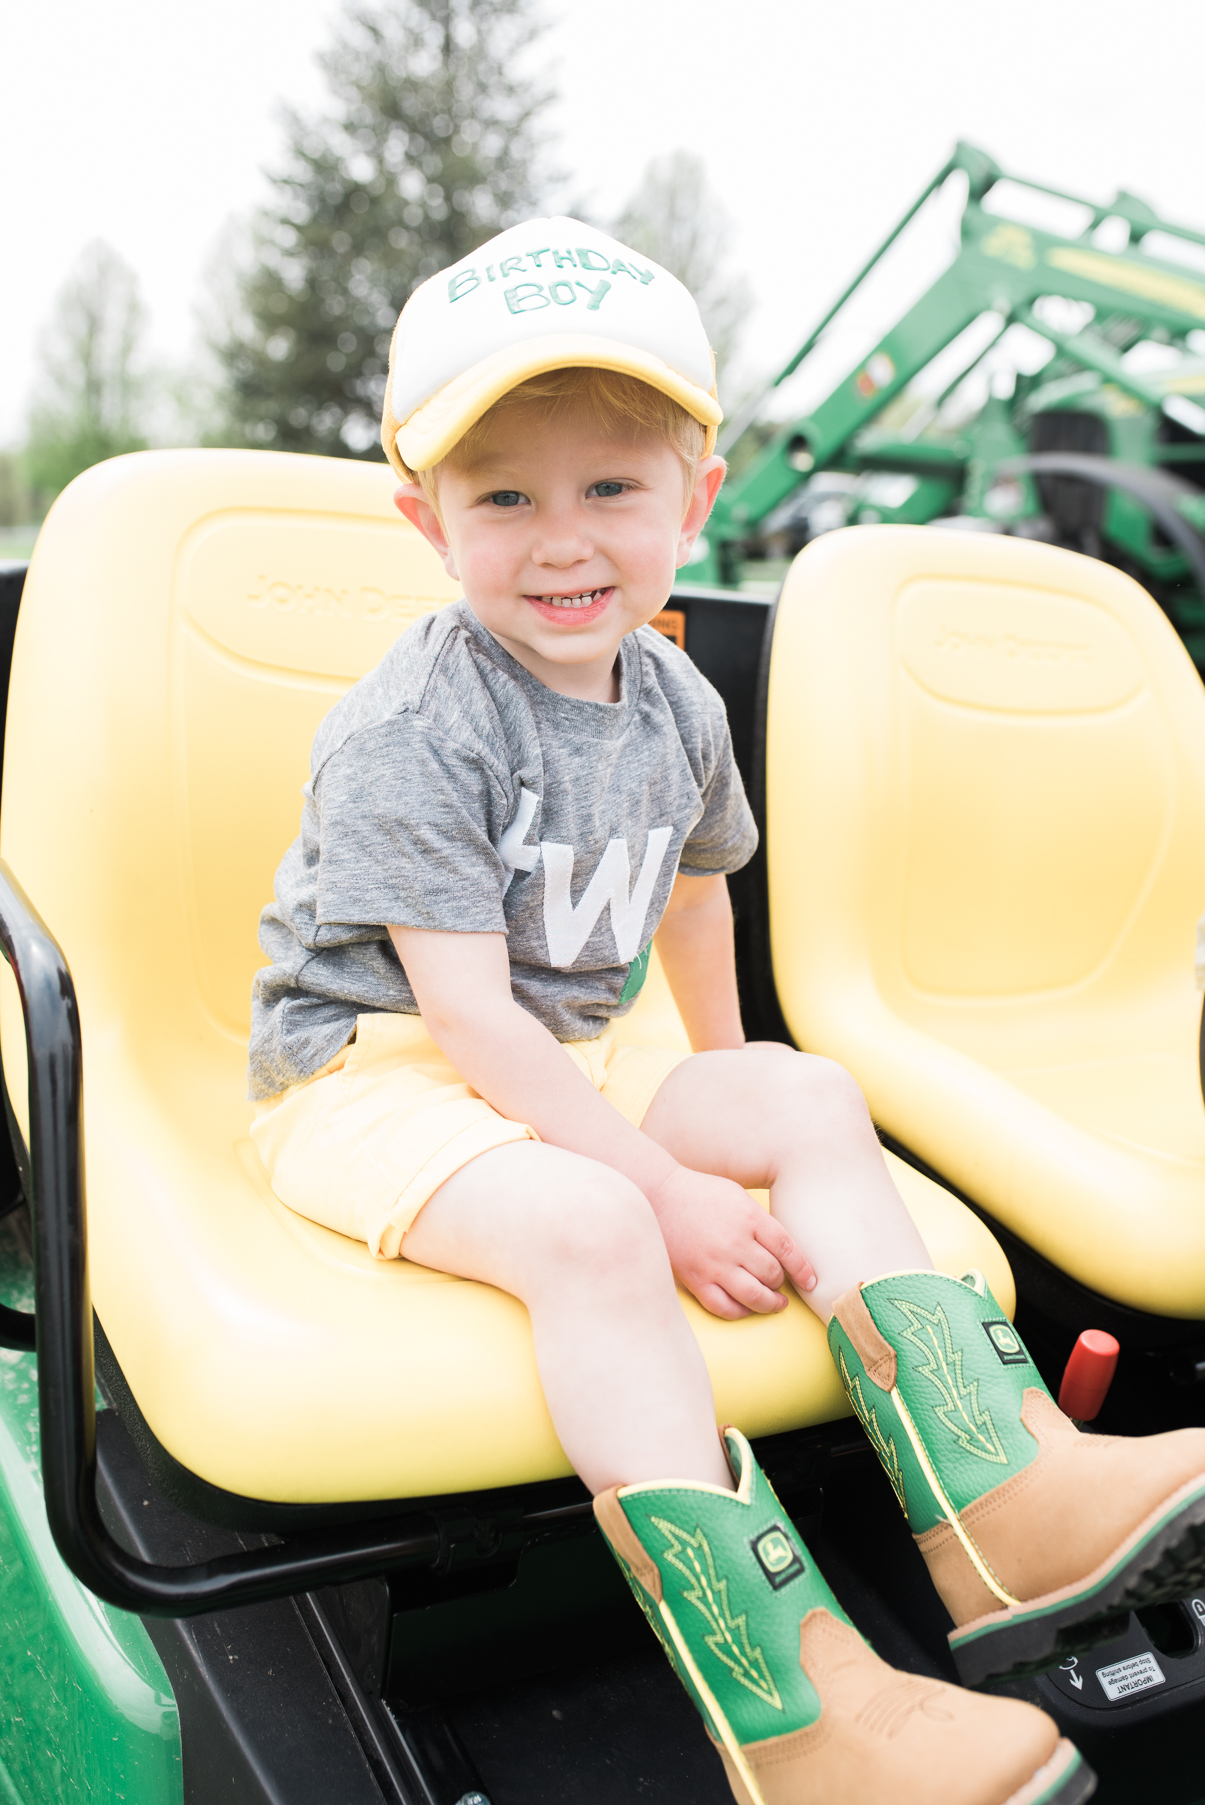 Baltimore-Maryland-harford county-photographer-family-lifestyle-tractor party-photos-by-breanna-kuhlmann-32.jpg